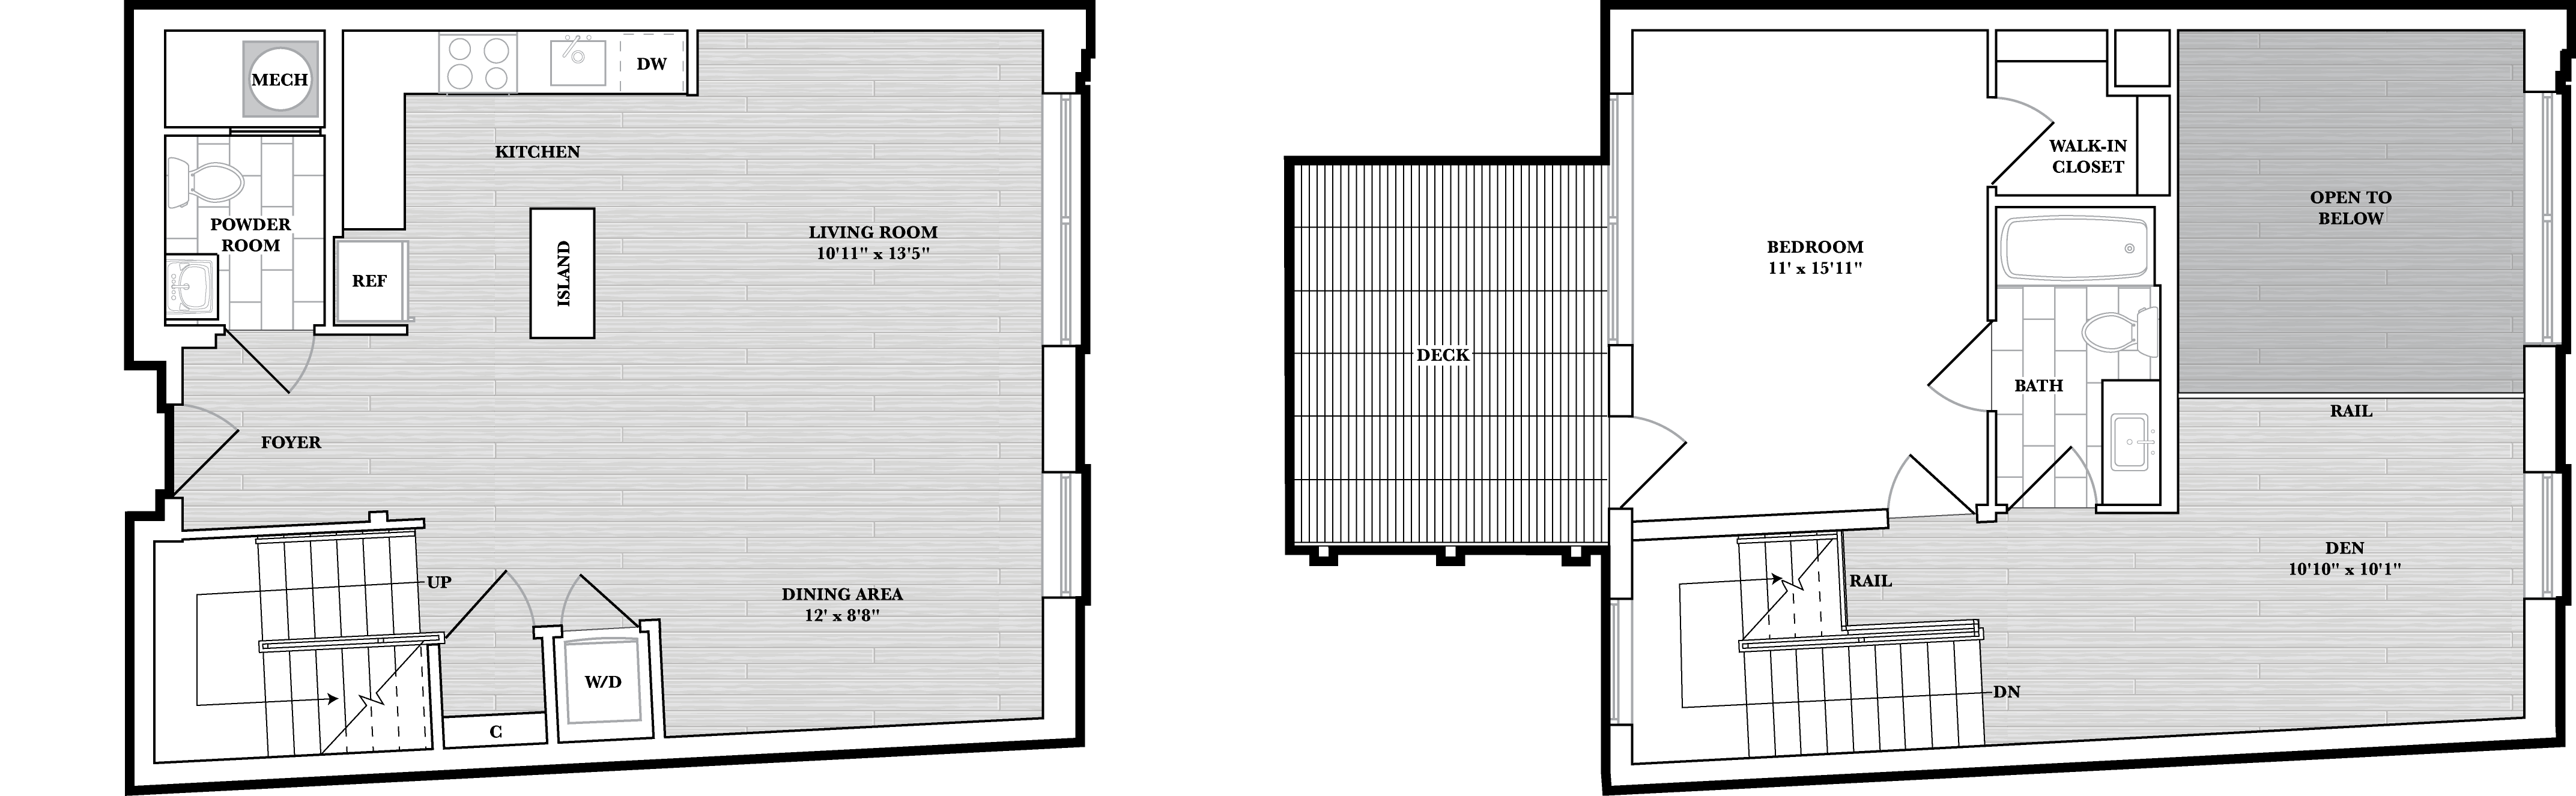 floorplan image of S202